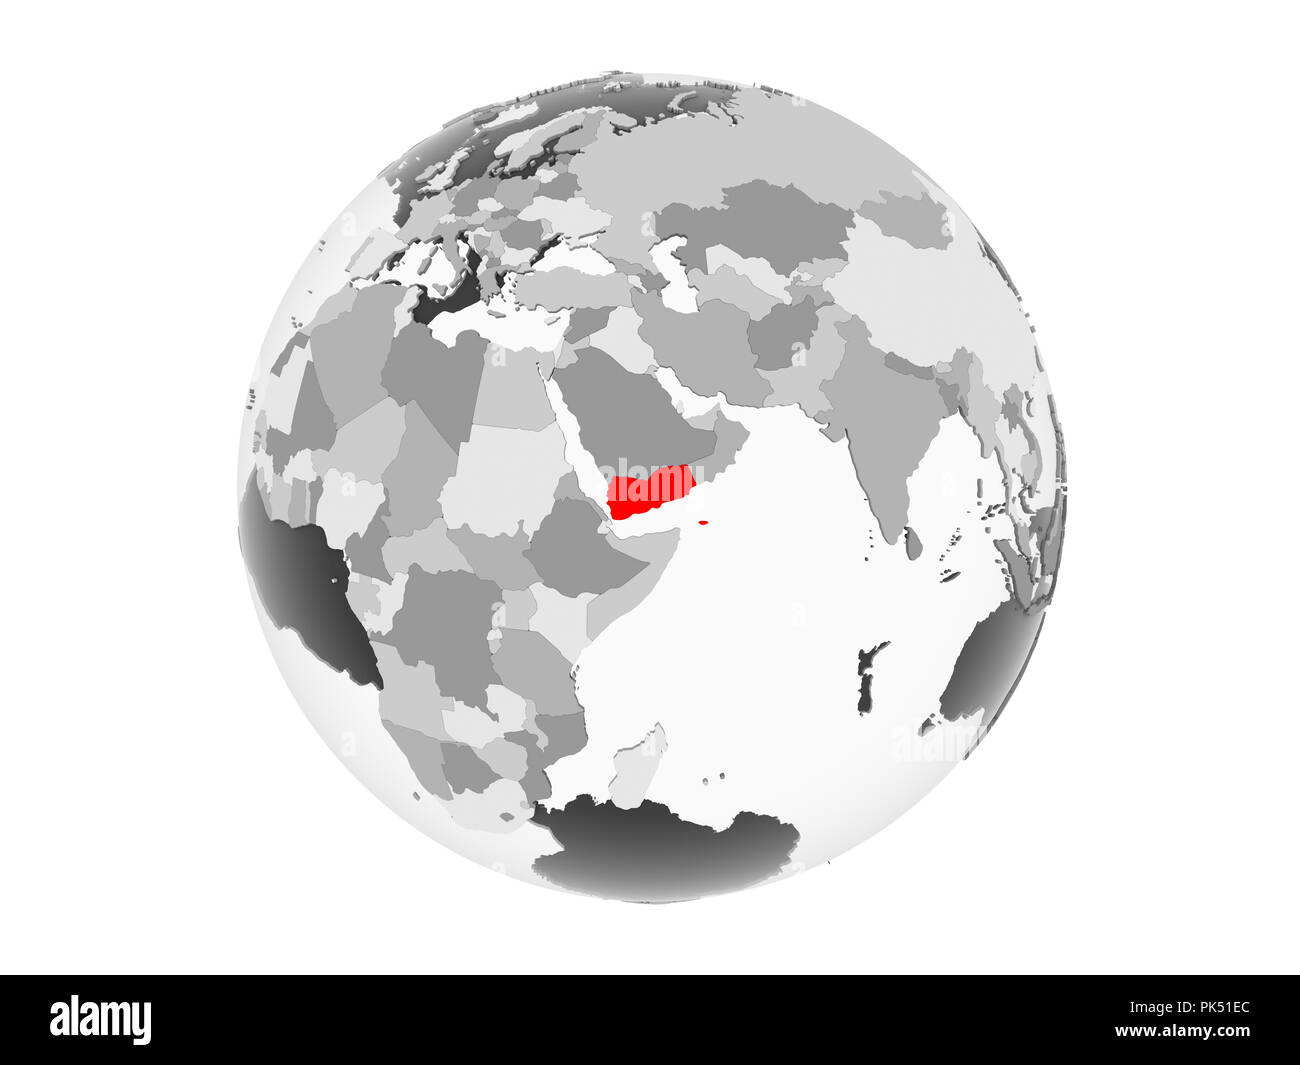 Yemen highlighted in red on grey political globe with transparent oceans. 3D illustration isolated on white background. - Stock Image